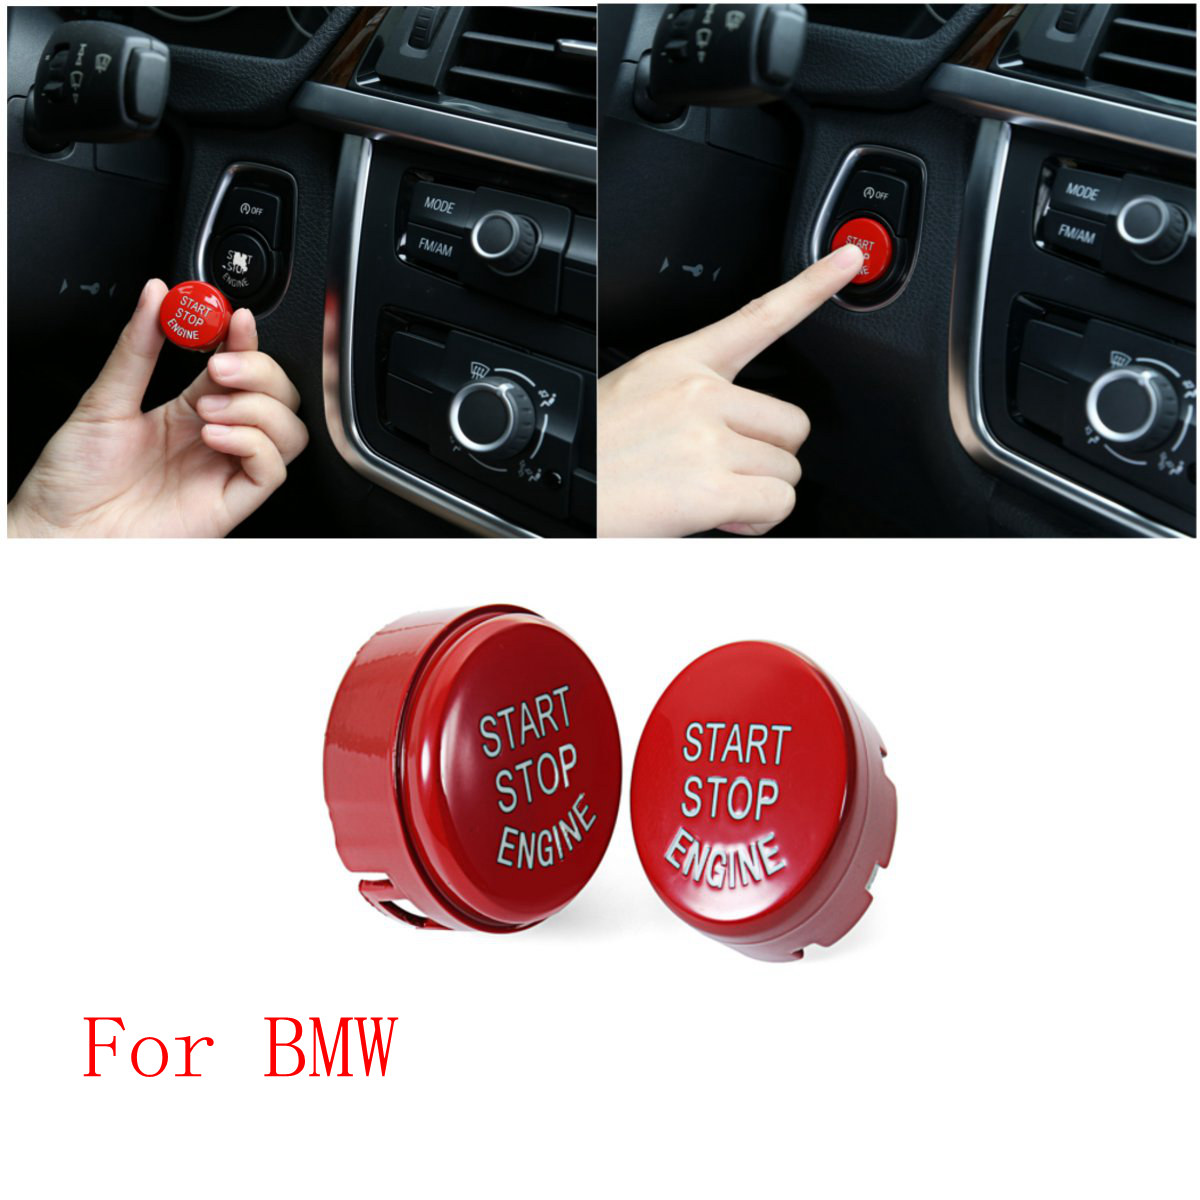 Car Engine Start Button Stop Paste Push Switch Ignition Ring For BMW F20 F21 F30 F31 F10 F11 F01 F48 F25 F15 F16 Car Styling